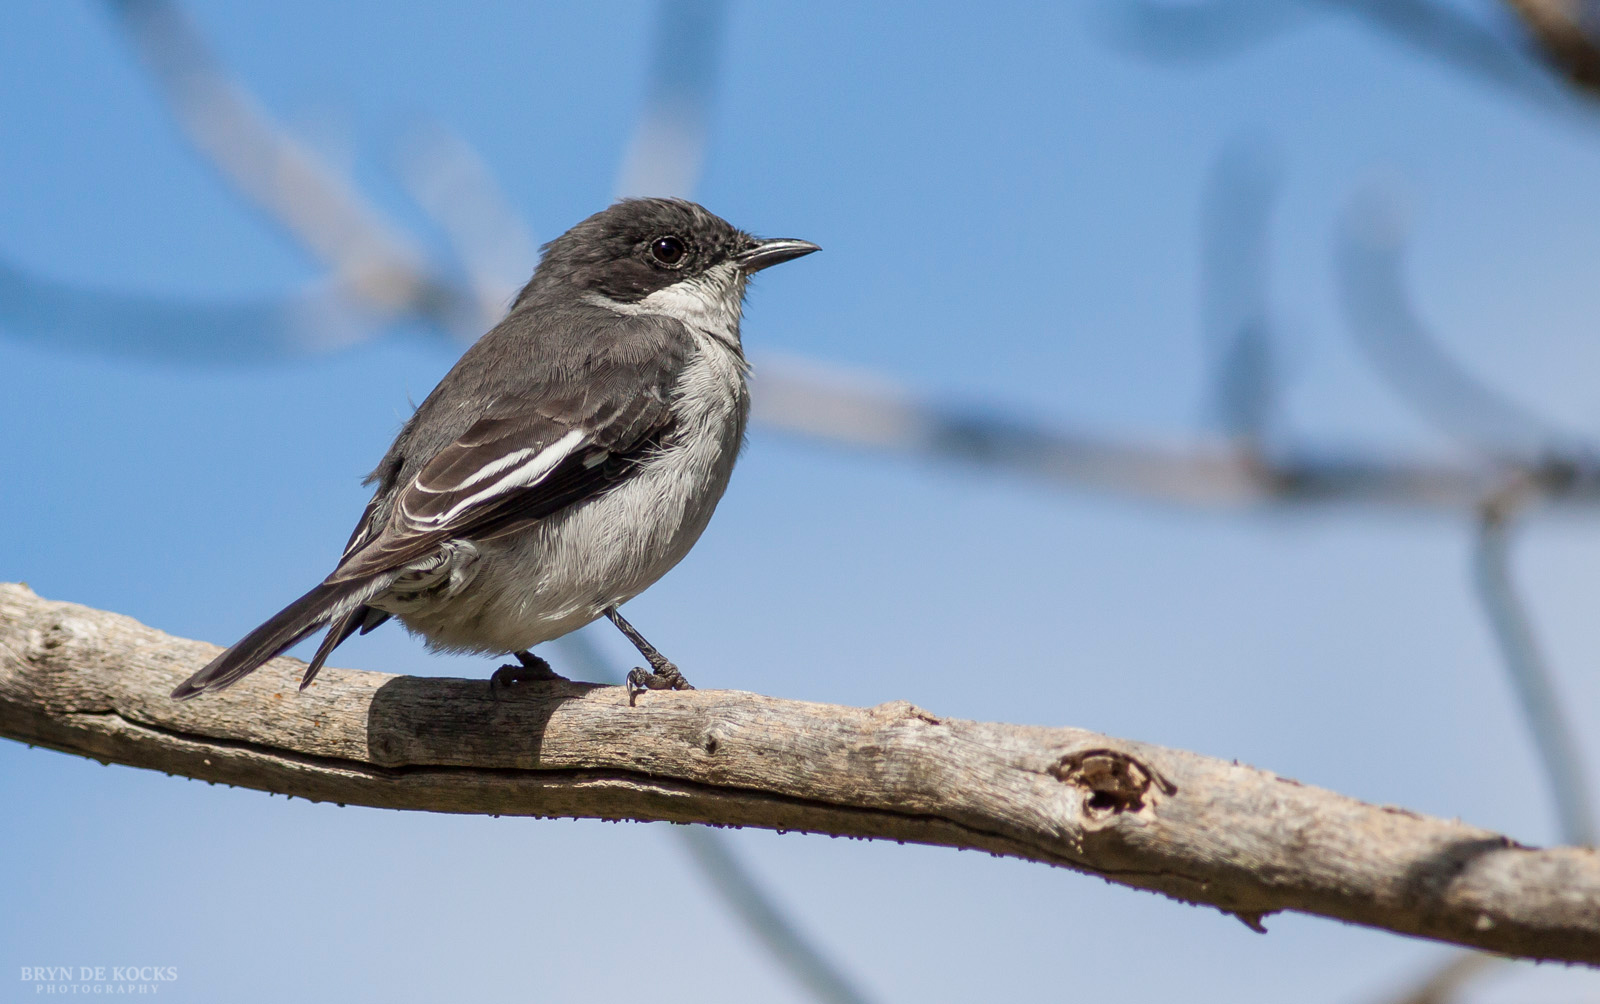 Common Fiscal Perched